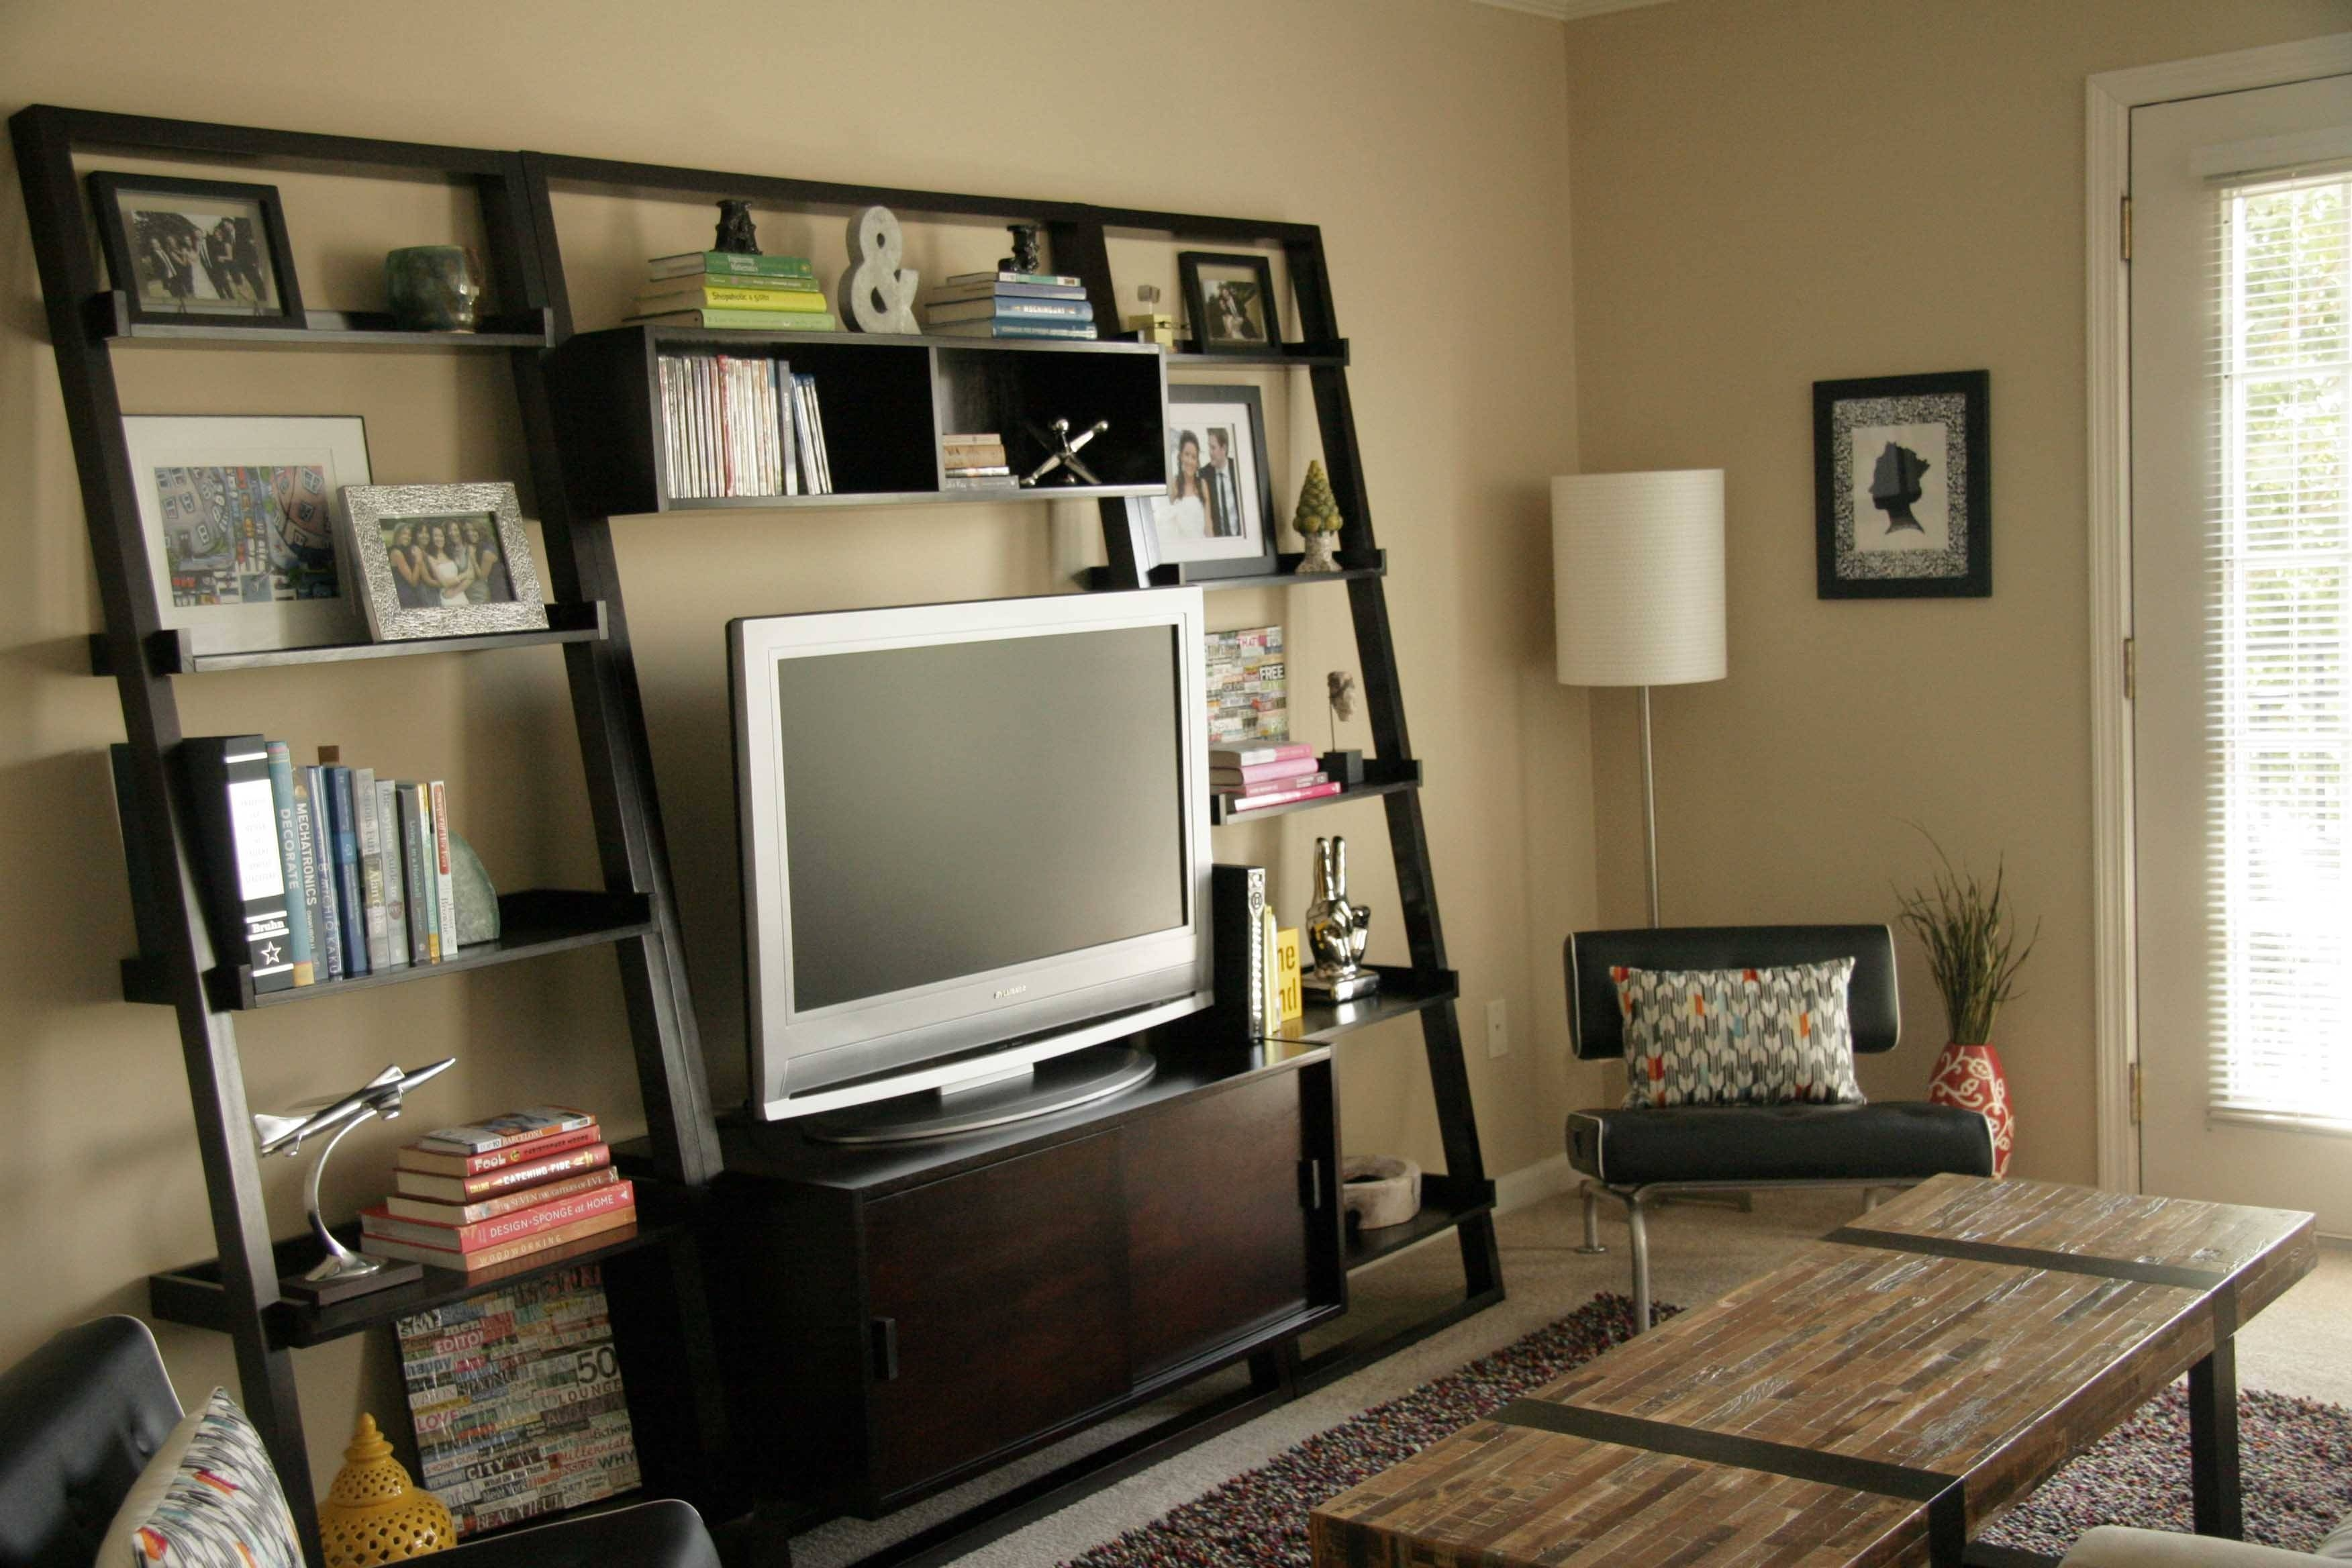 Custom Wood Cool Homemade Tv Stands With Vertical Bookshelf And For Tv Stands And Bookshelf (View 5 of 15)